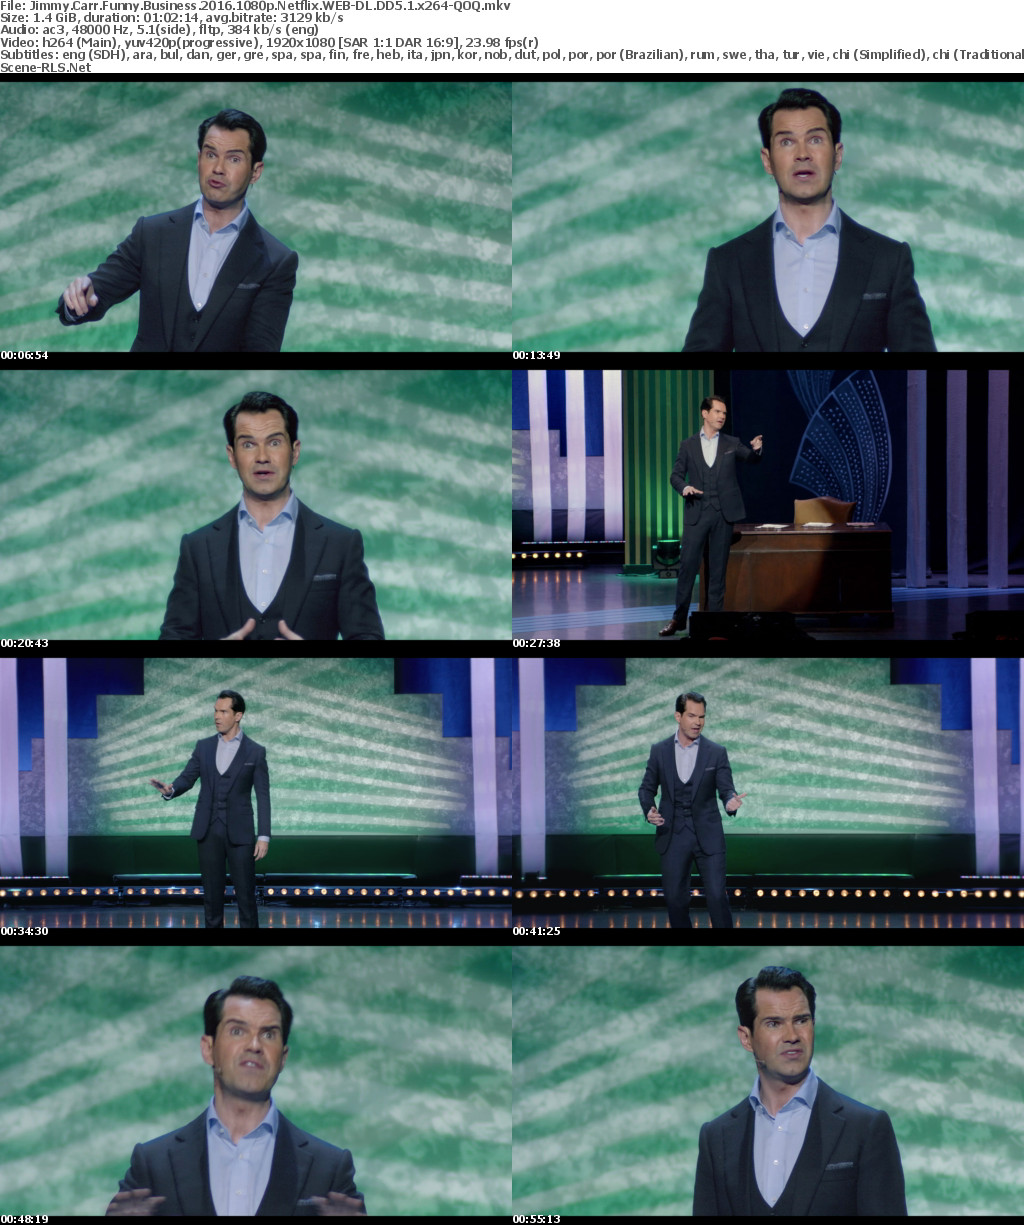 jimmy carr funny business